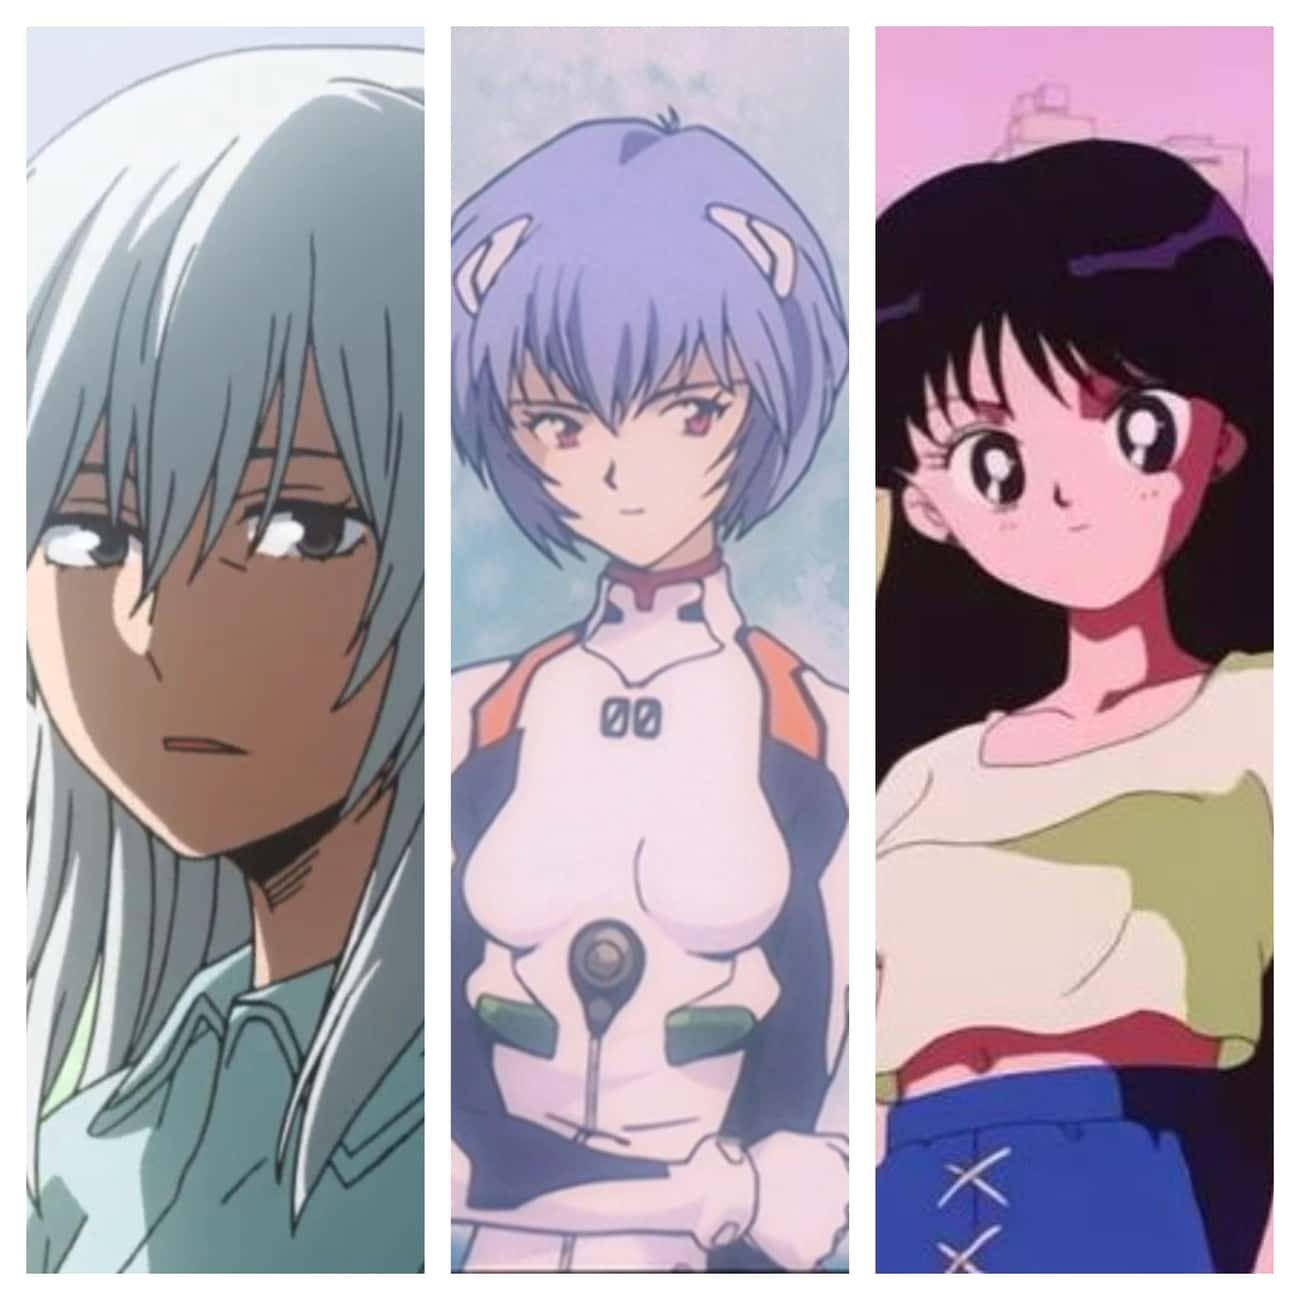 Rei  is listed (or ranked) 1 on the list The 15 Most Common Female Anime Names (And What They Mean)